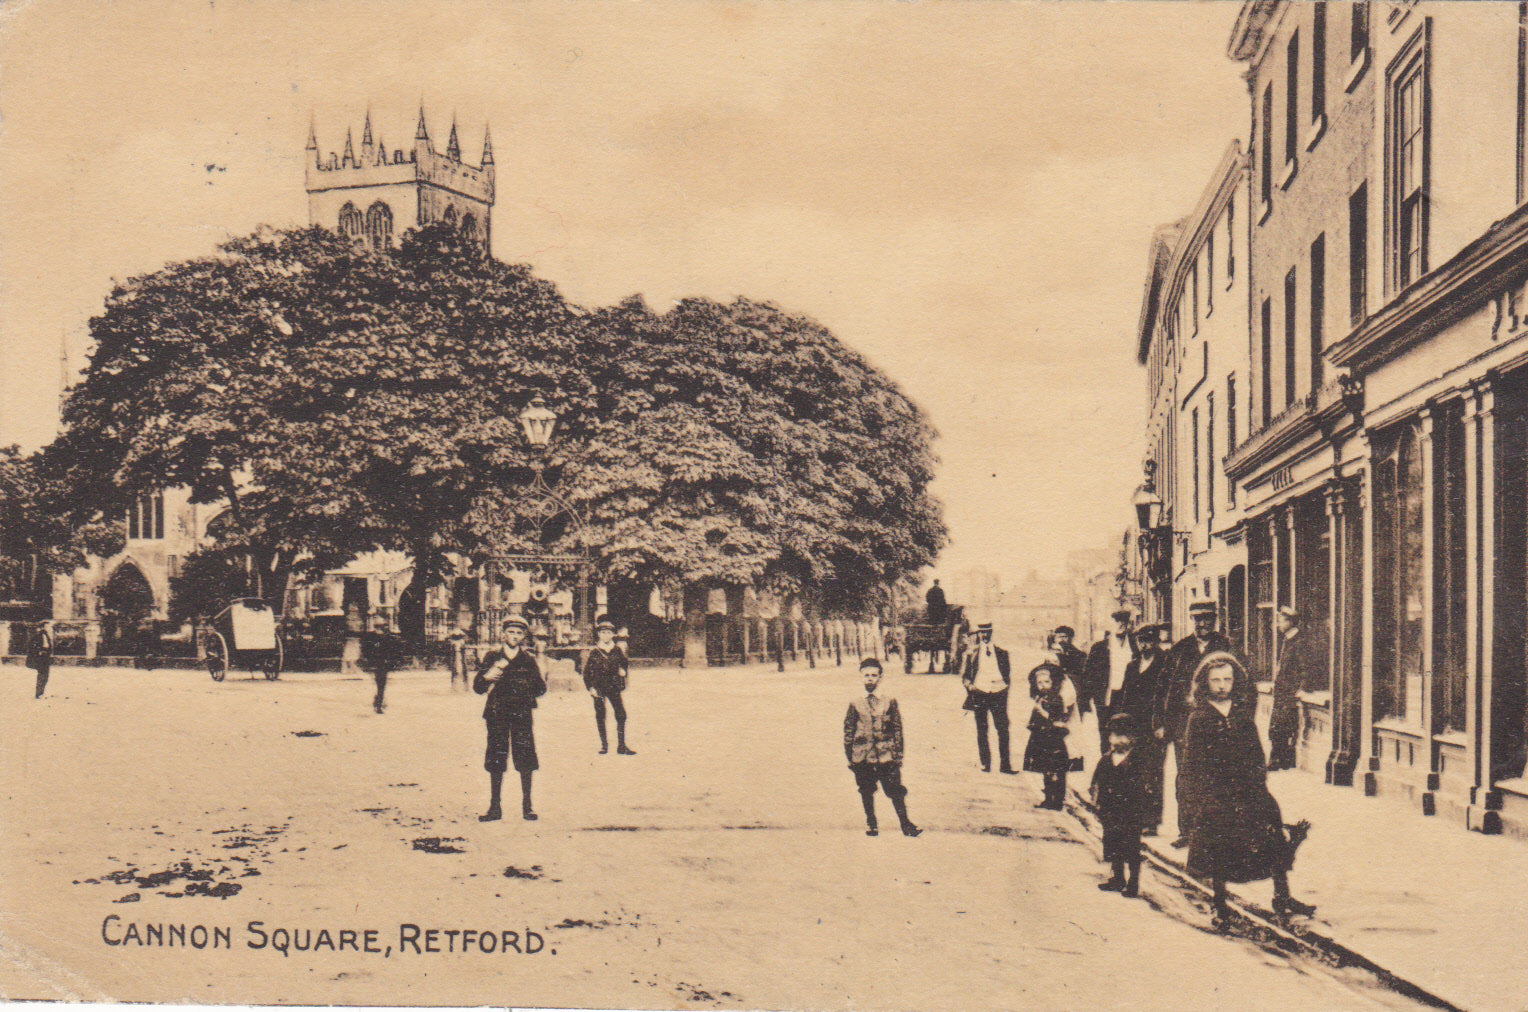 Cannon Square, Retford - 1921 postcard